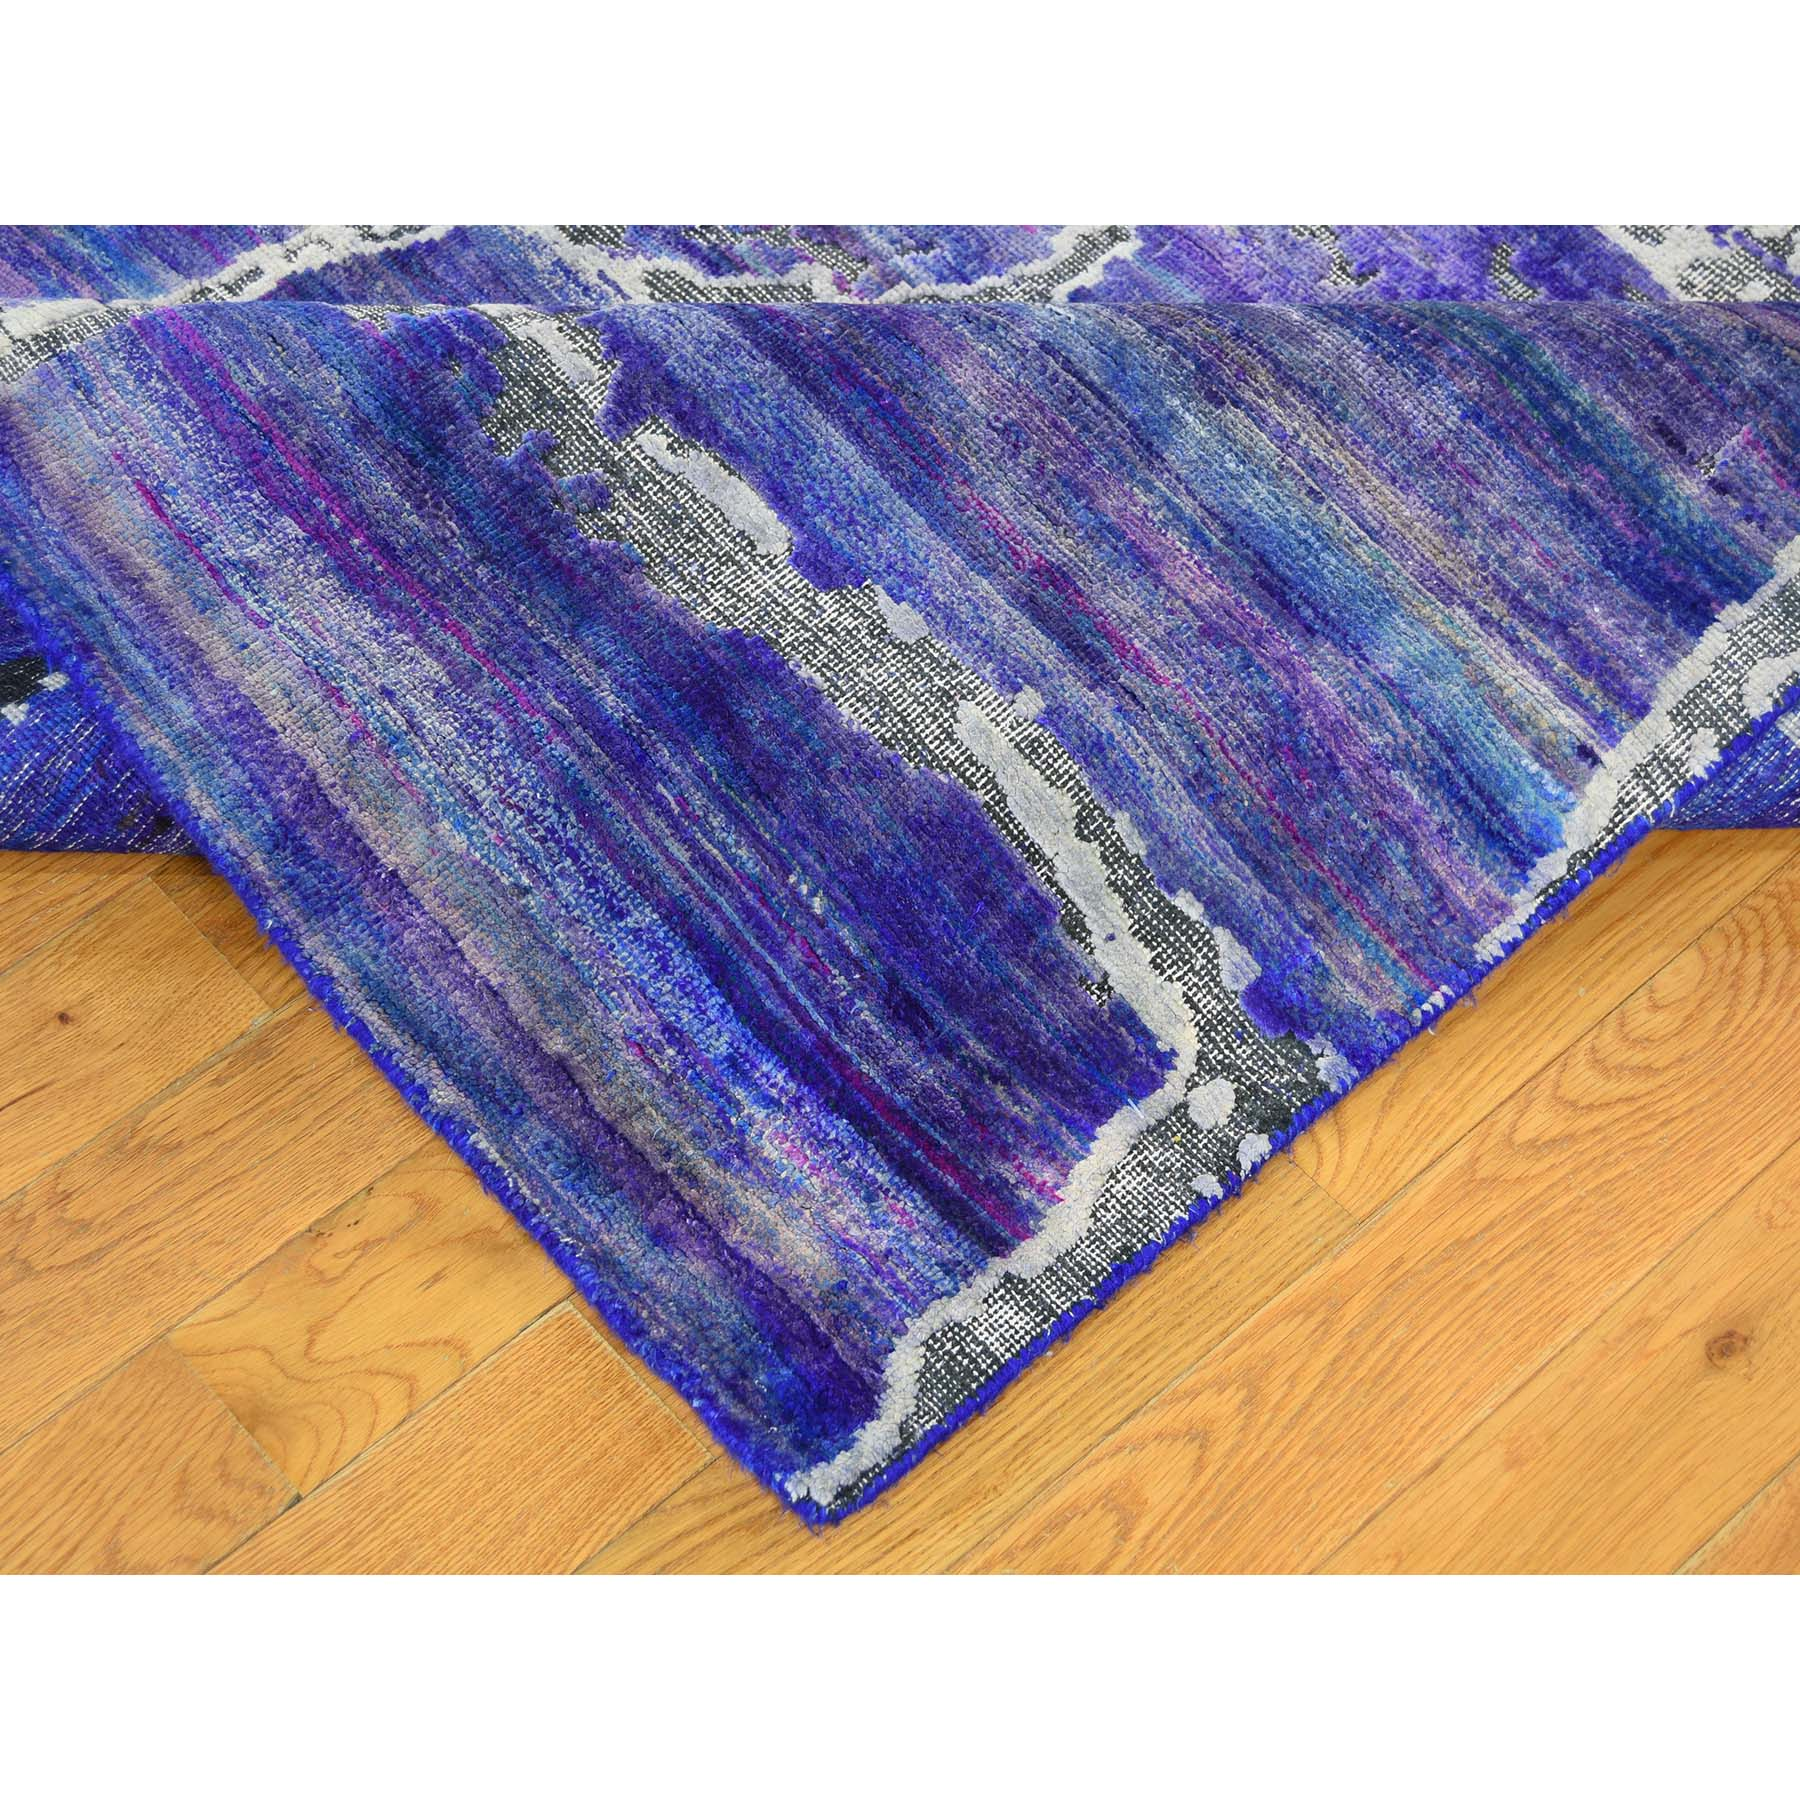 "8'10""x12' DIMINISHING BRICKS Sari Silk with Textured Wool Hand-Knotted Oriental Rug"